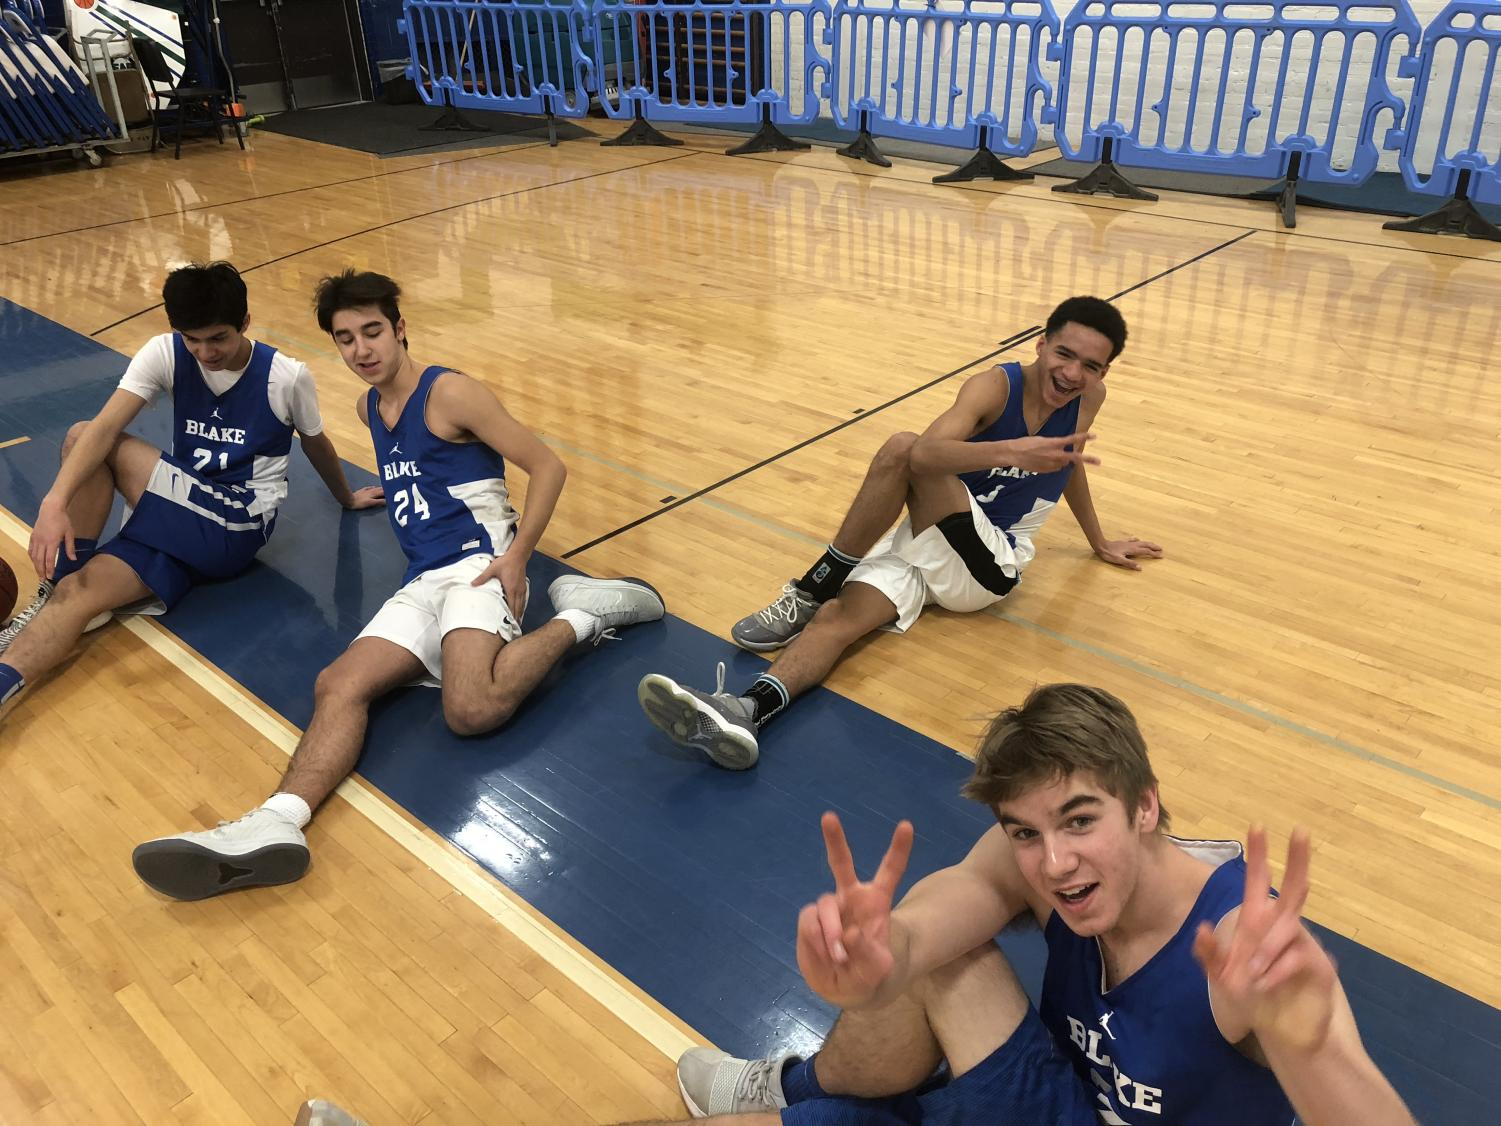 Sophomores Gabe Ganz '21, Robert Grace '21, and Jasper Liu '21 and junior Patch Fechtmeyer '20 warm up before practice